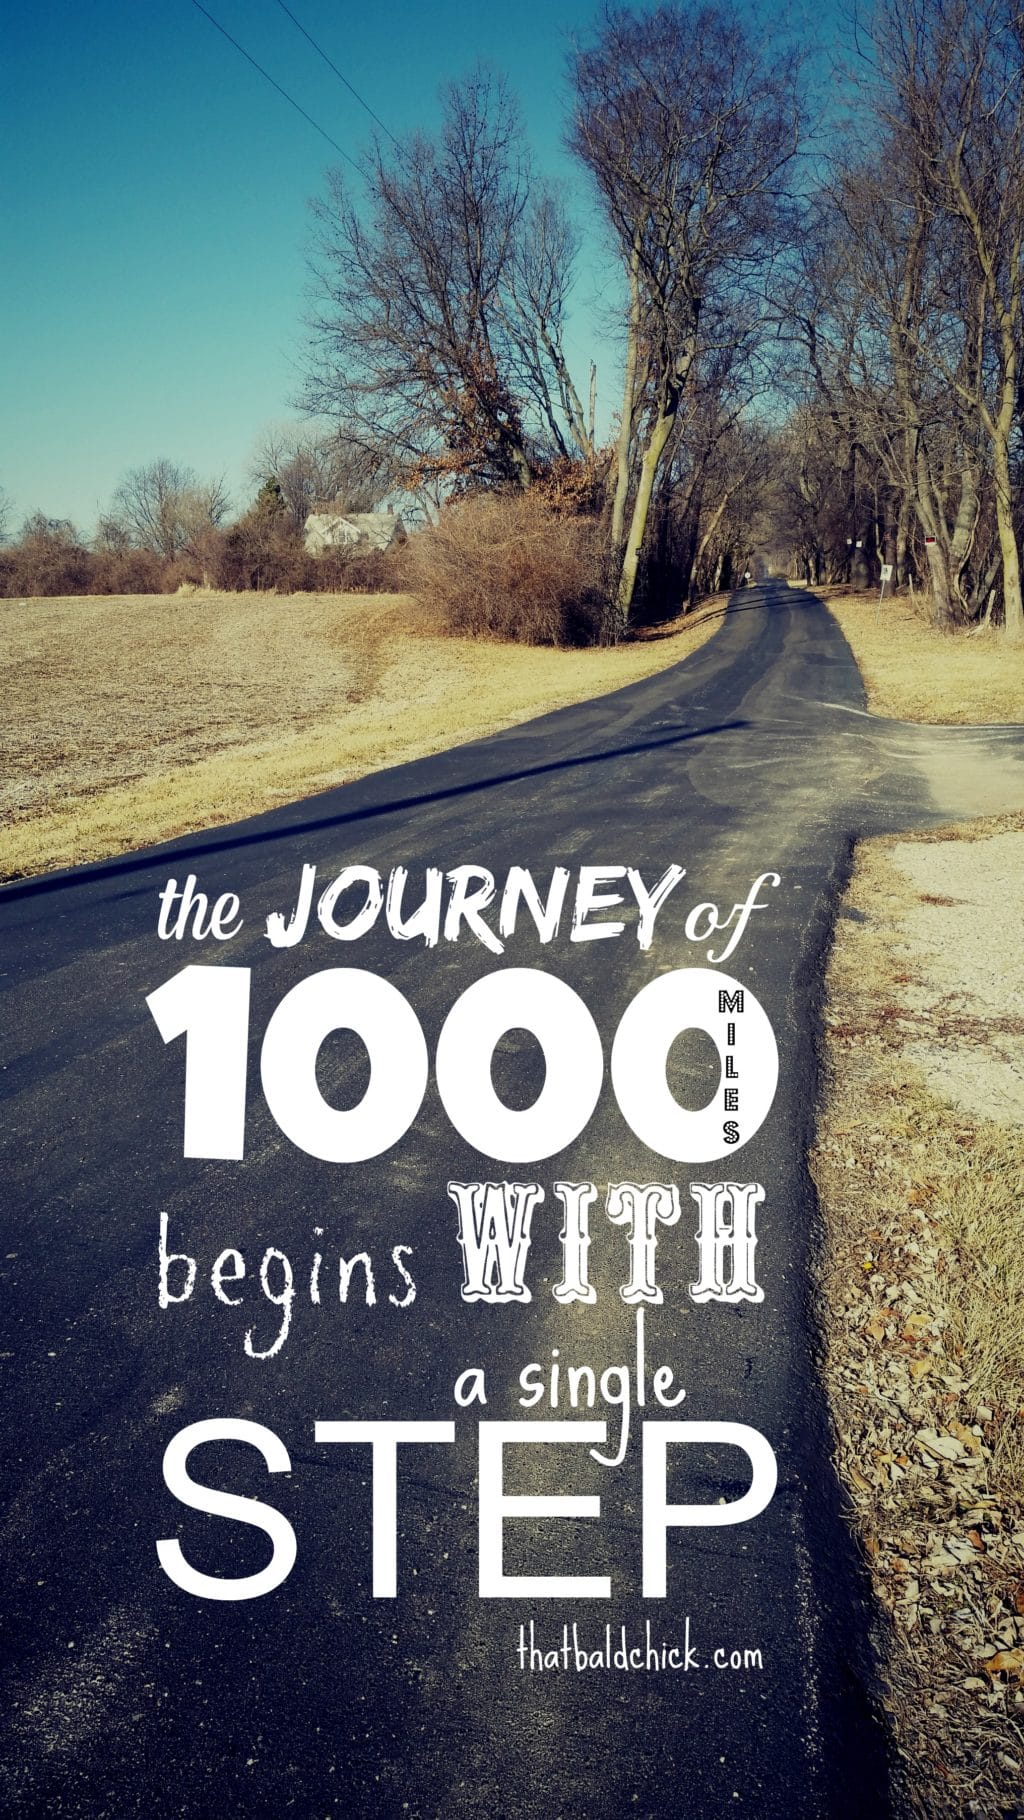 the journey of 1000 miles begins with a single step @thatbaldchick